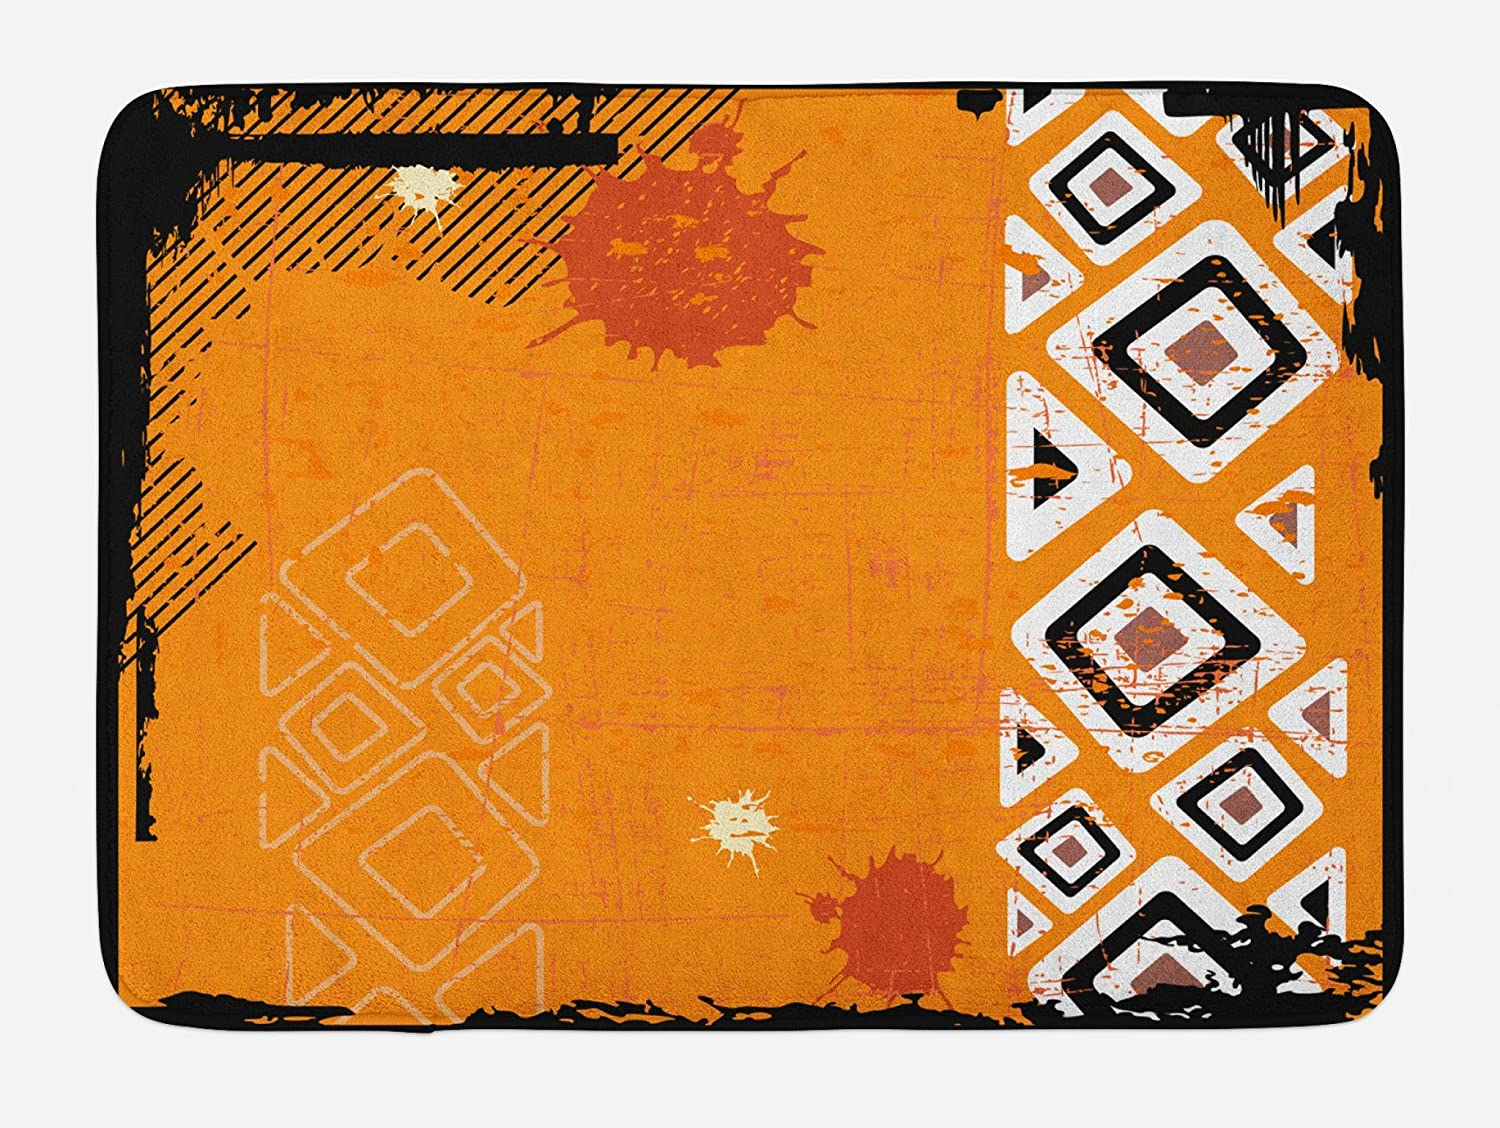 Ambesonne Tribal Bath Mat, Ethnic African Design with Bold Lines Geometric Triangles Artwork Image, Plush Bathroom Decor Mat with Non Slip Backing, 29.5 W X 17.5 L Inches, Black Orange and White